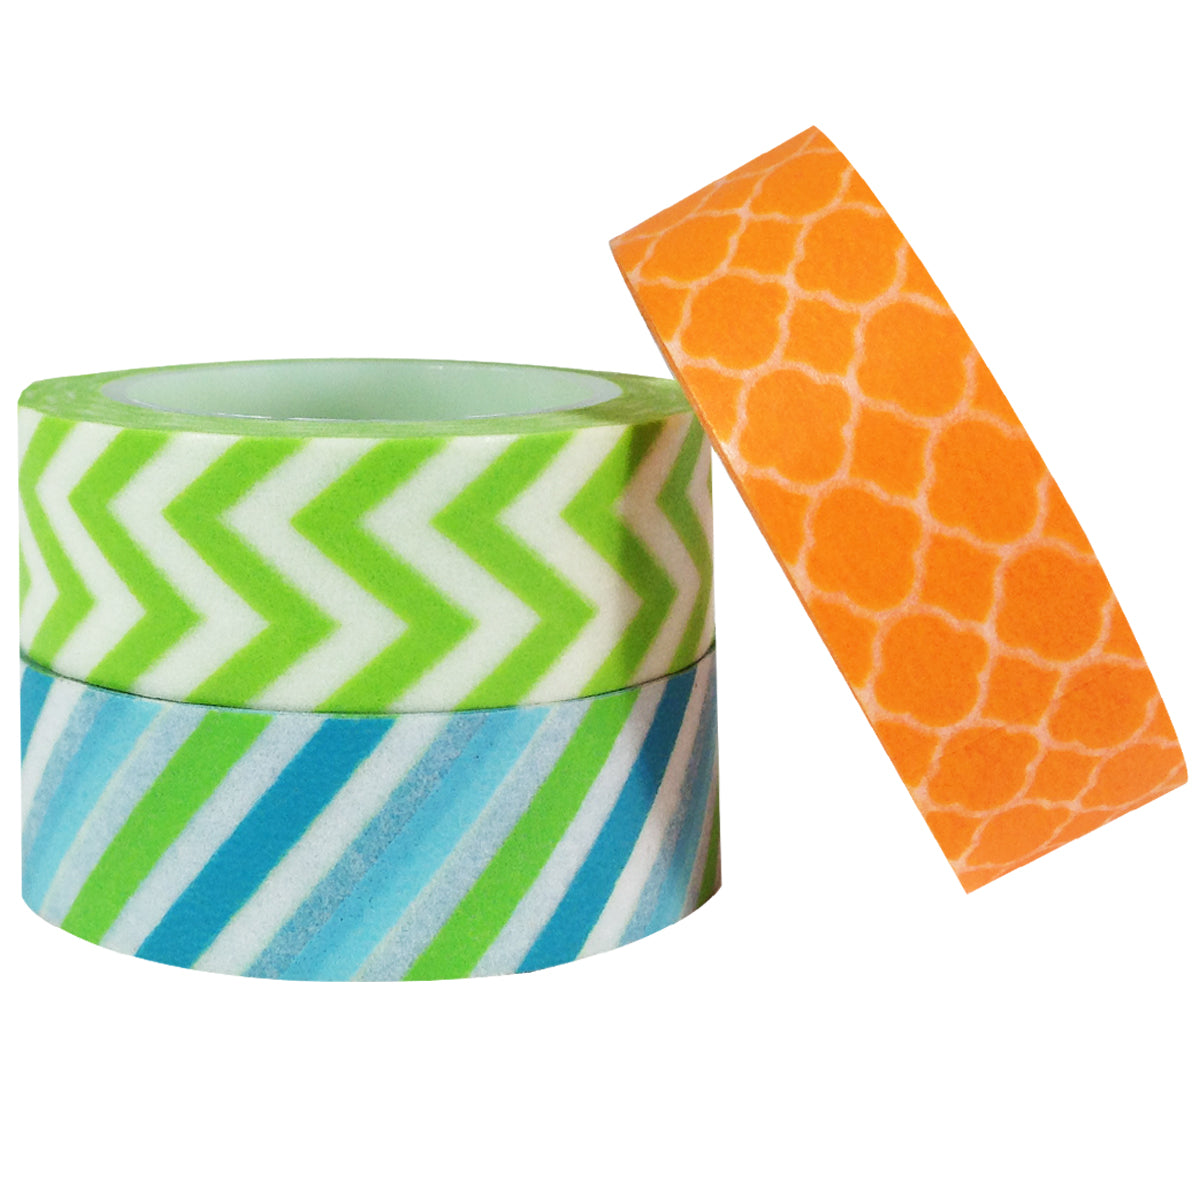 Summer Days Japanese Washi Masking Tape (set of 3)